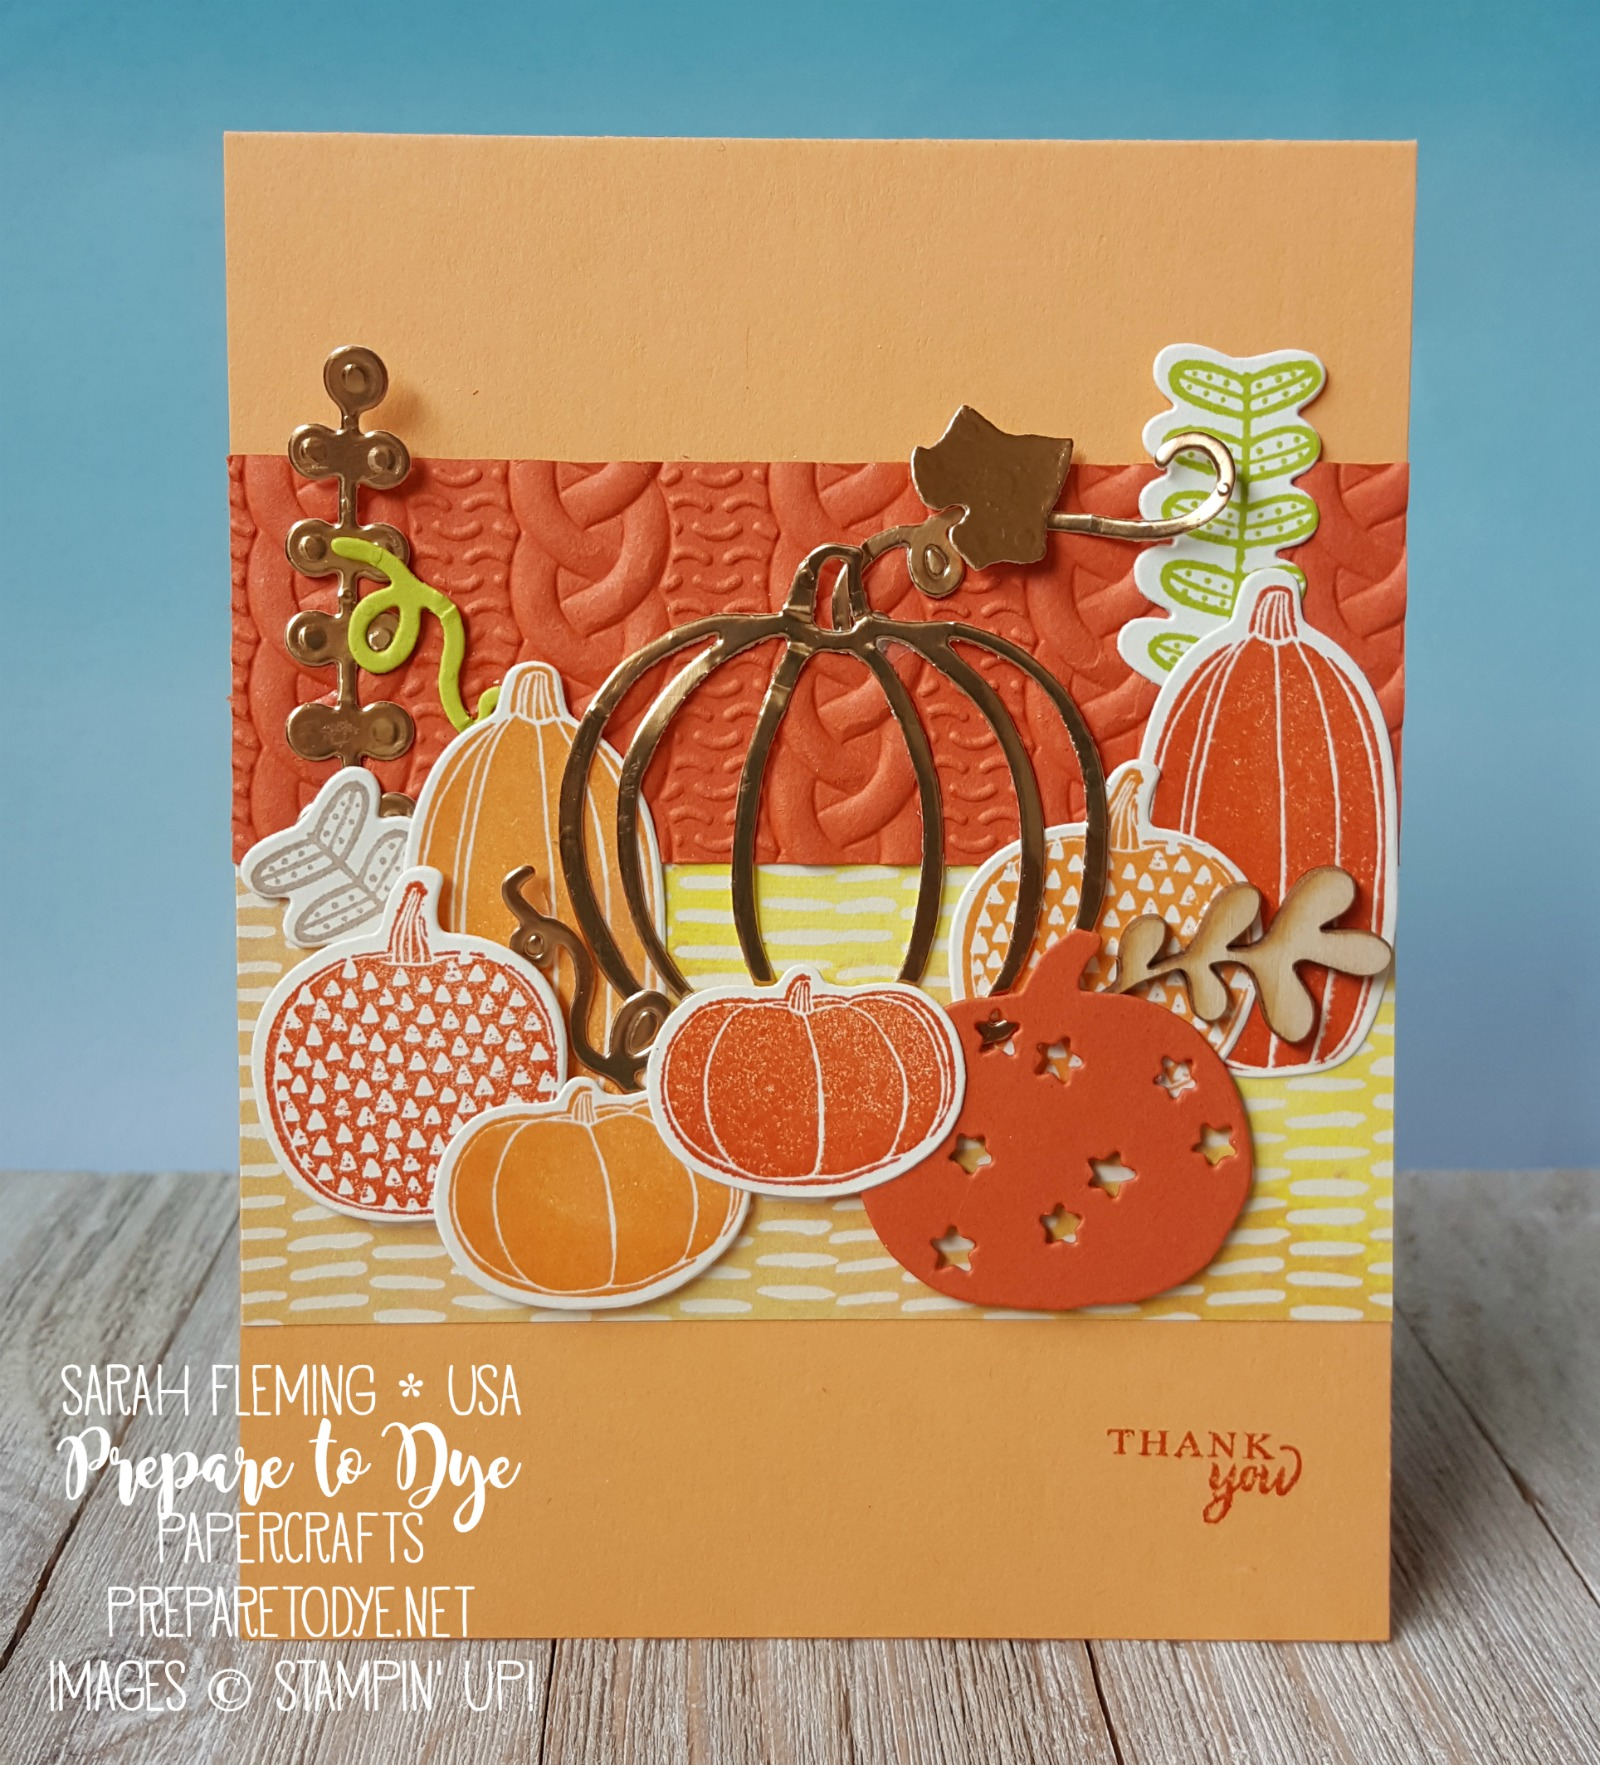 Stampin' Up! Pick a Pumpkin bundle with Patterned Pumpkins framelits, Painted Autumn designer series paper, Cable Knit embossing folder, Touches of Nature Elements - handmade autumn fall thank you card - Sarah Fleming - Prepare to Dye Papercrafts